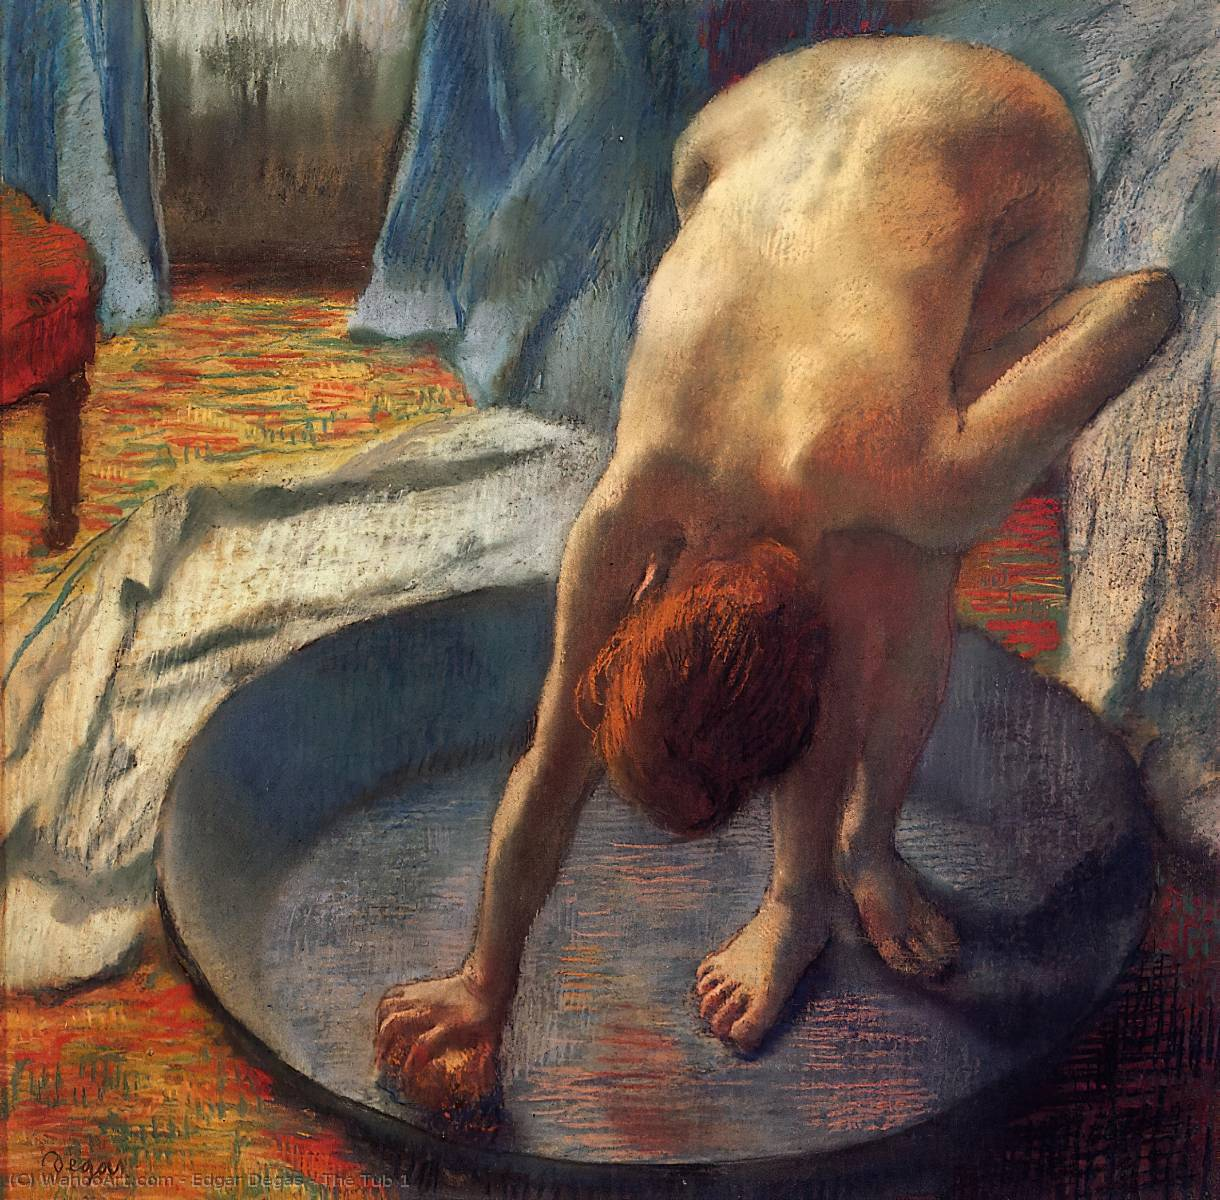 Le Tub 1  , 1886 de Edgar Degas (1834-1917, France)